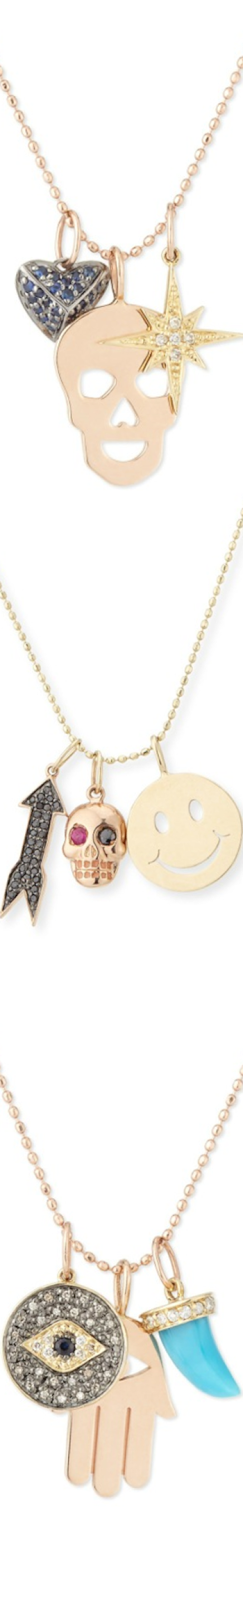 Sydney Evan Trio Charm Necklaces